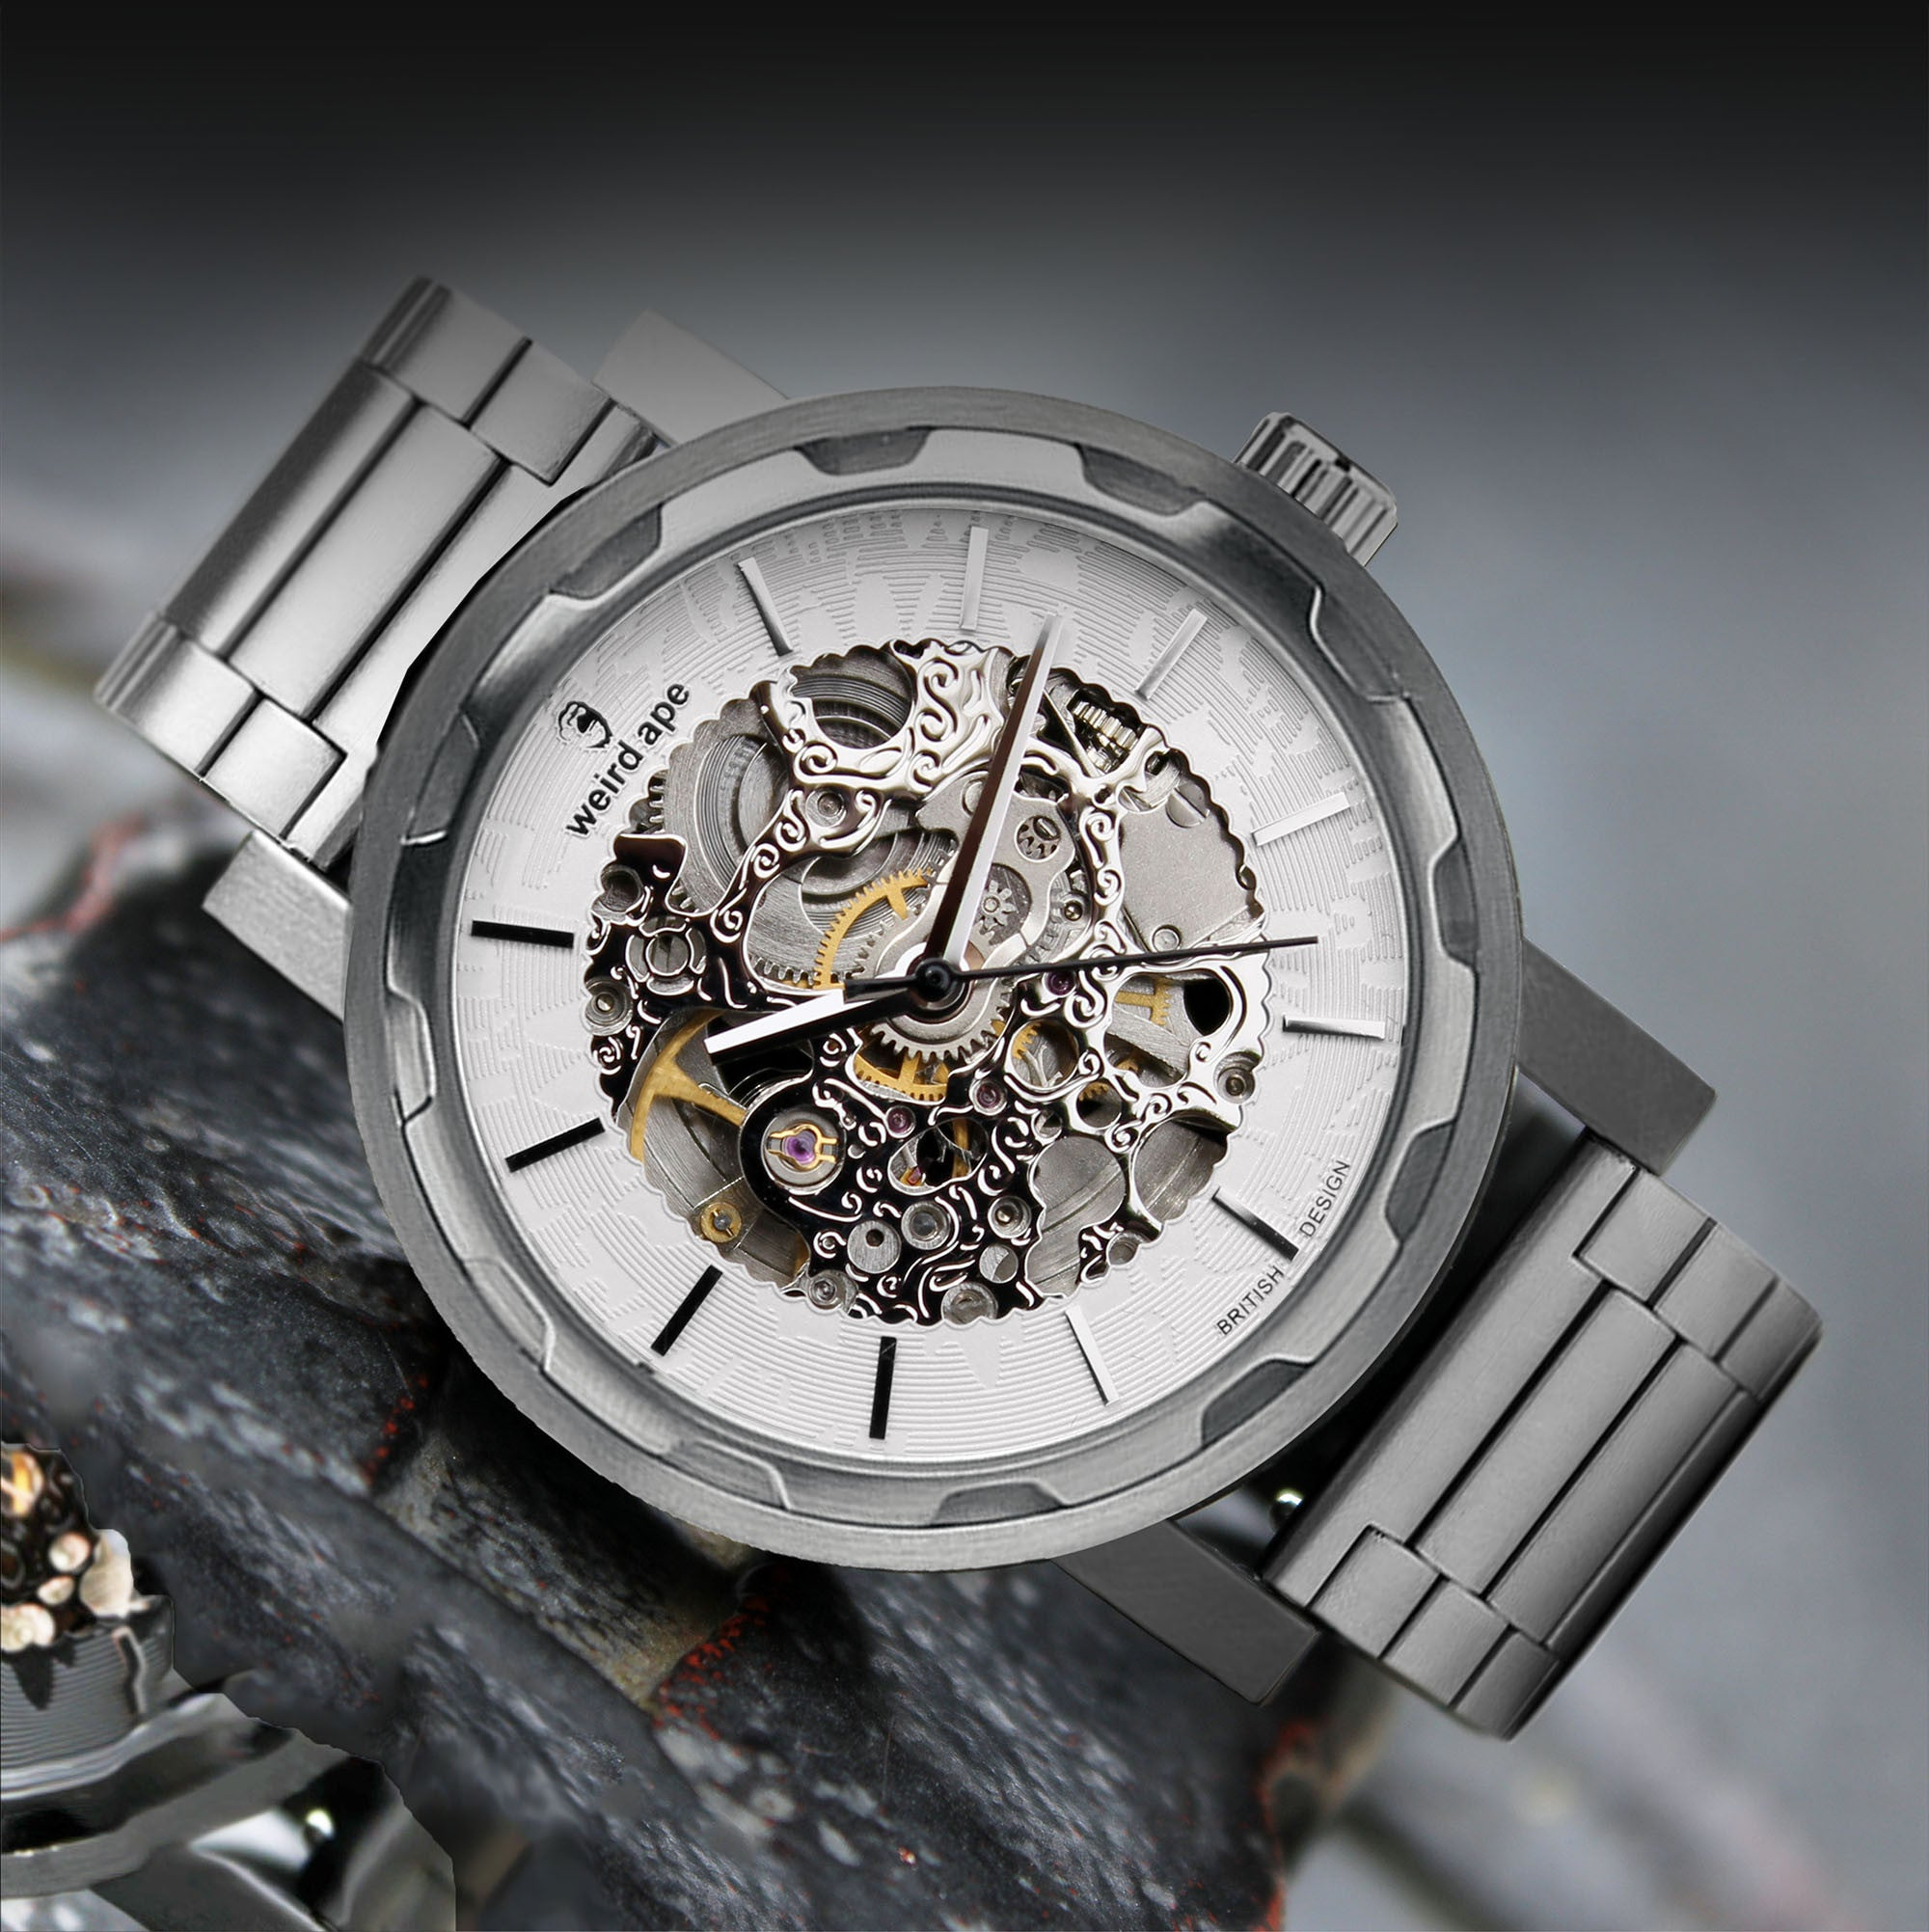 A picture of a silver mechanical watch with a silver steel strap.